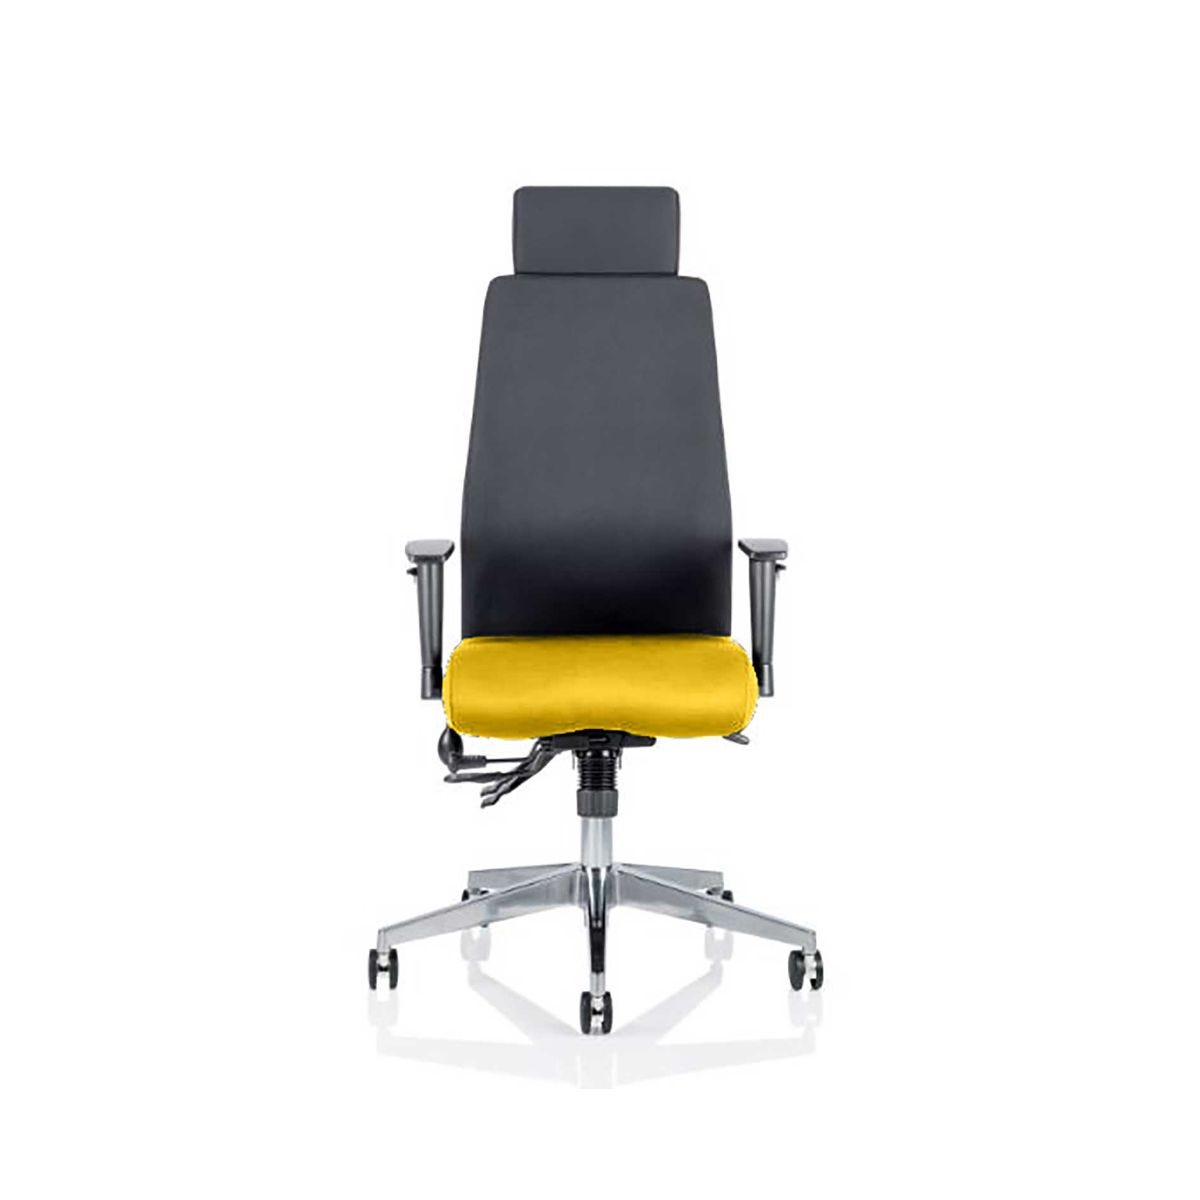 Onyx Office Chair With Headrest, Senna